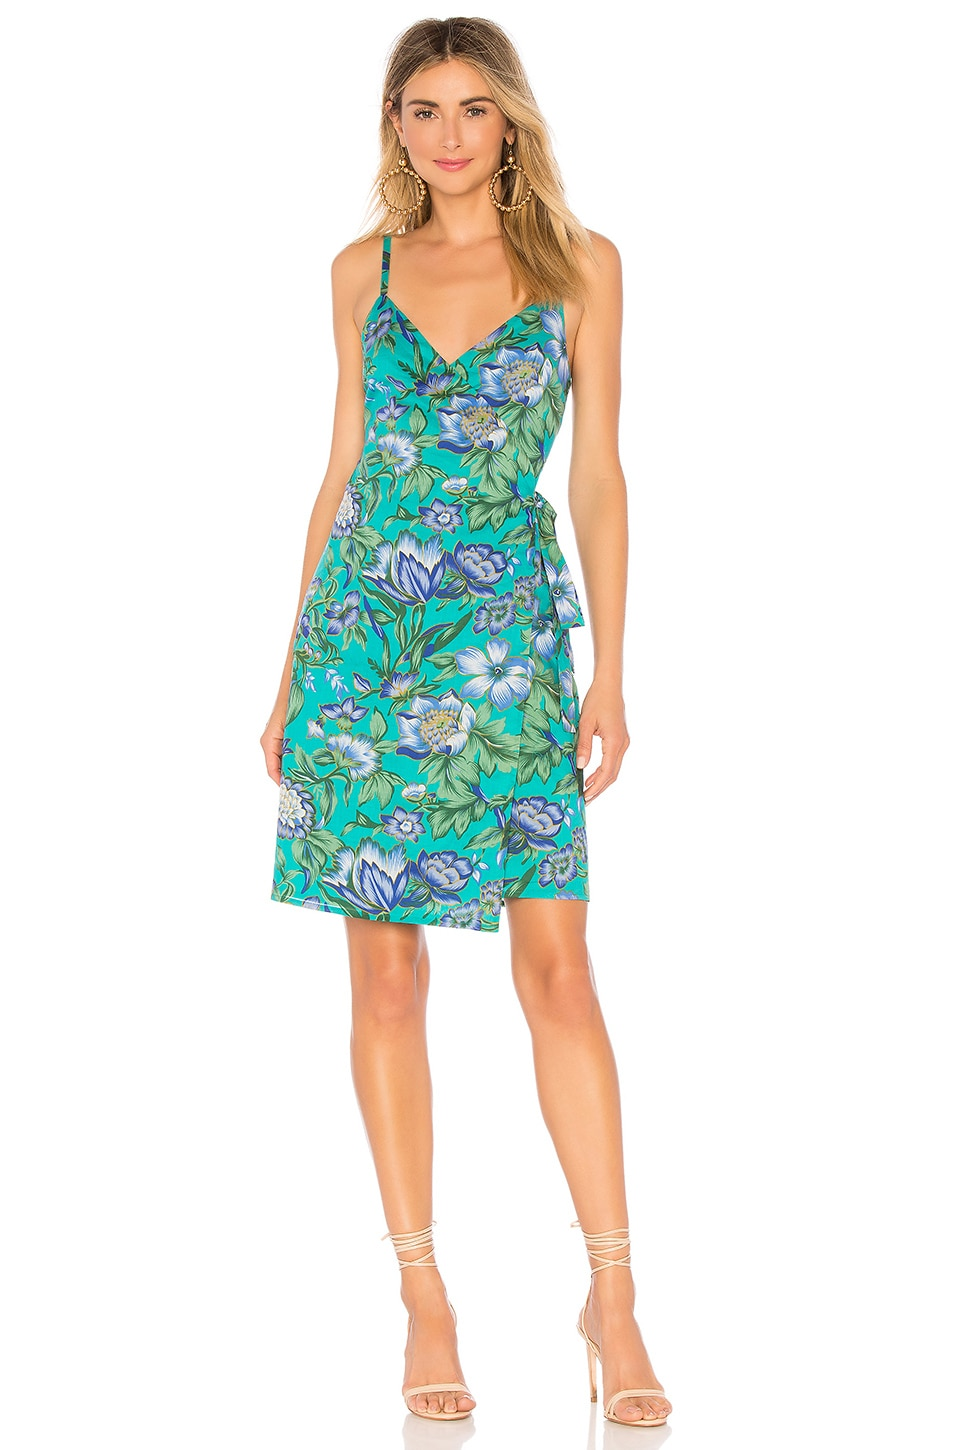 L'Academie The Martin Dress in Island Floral